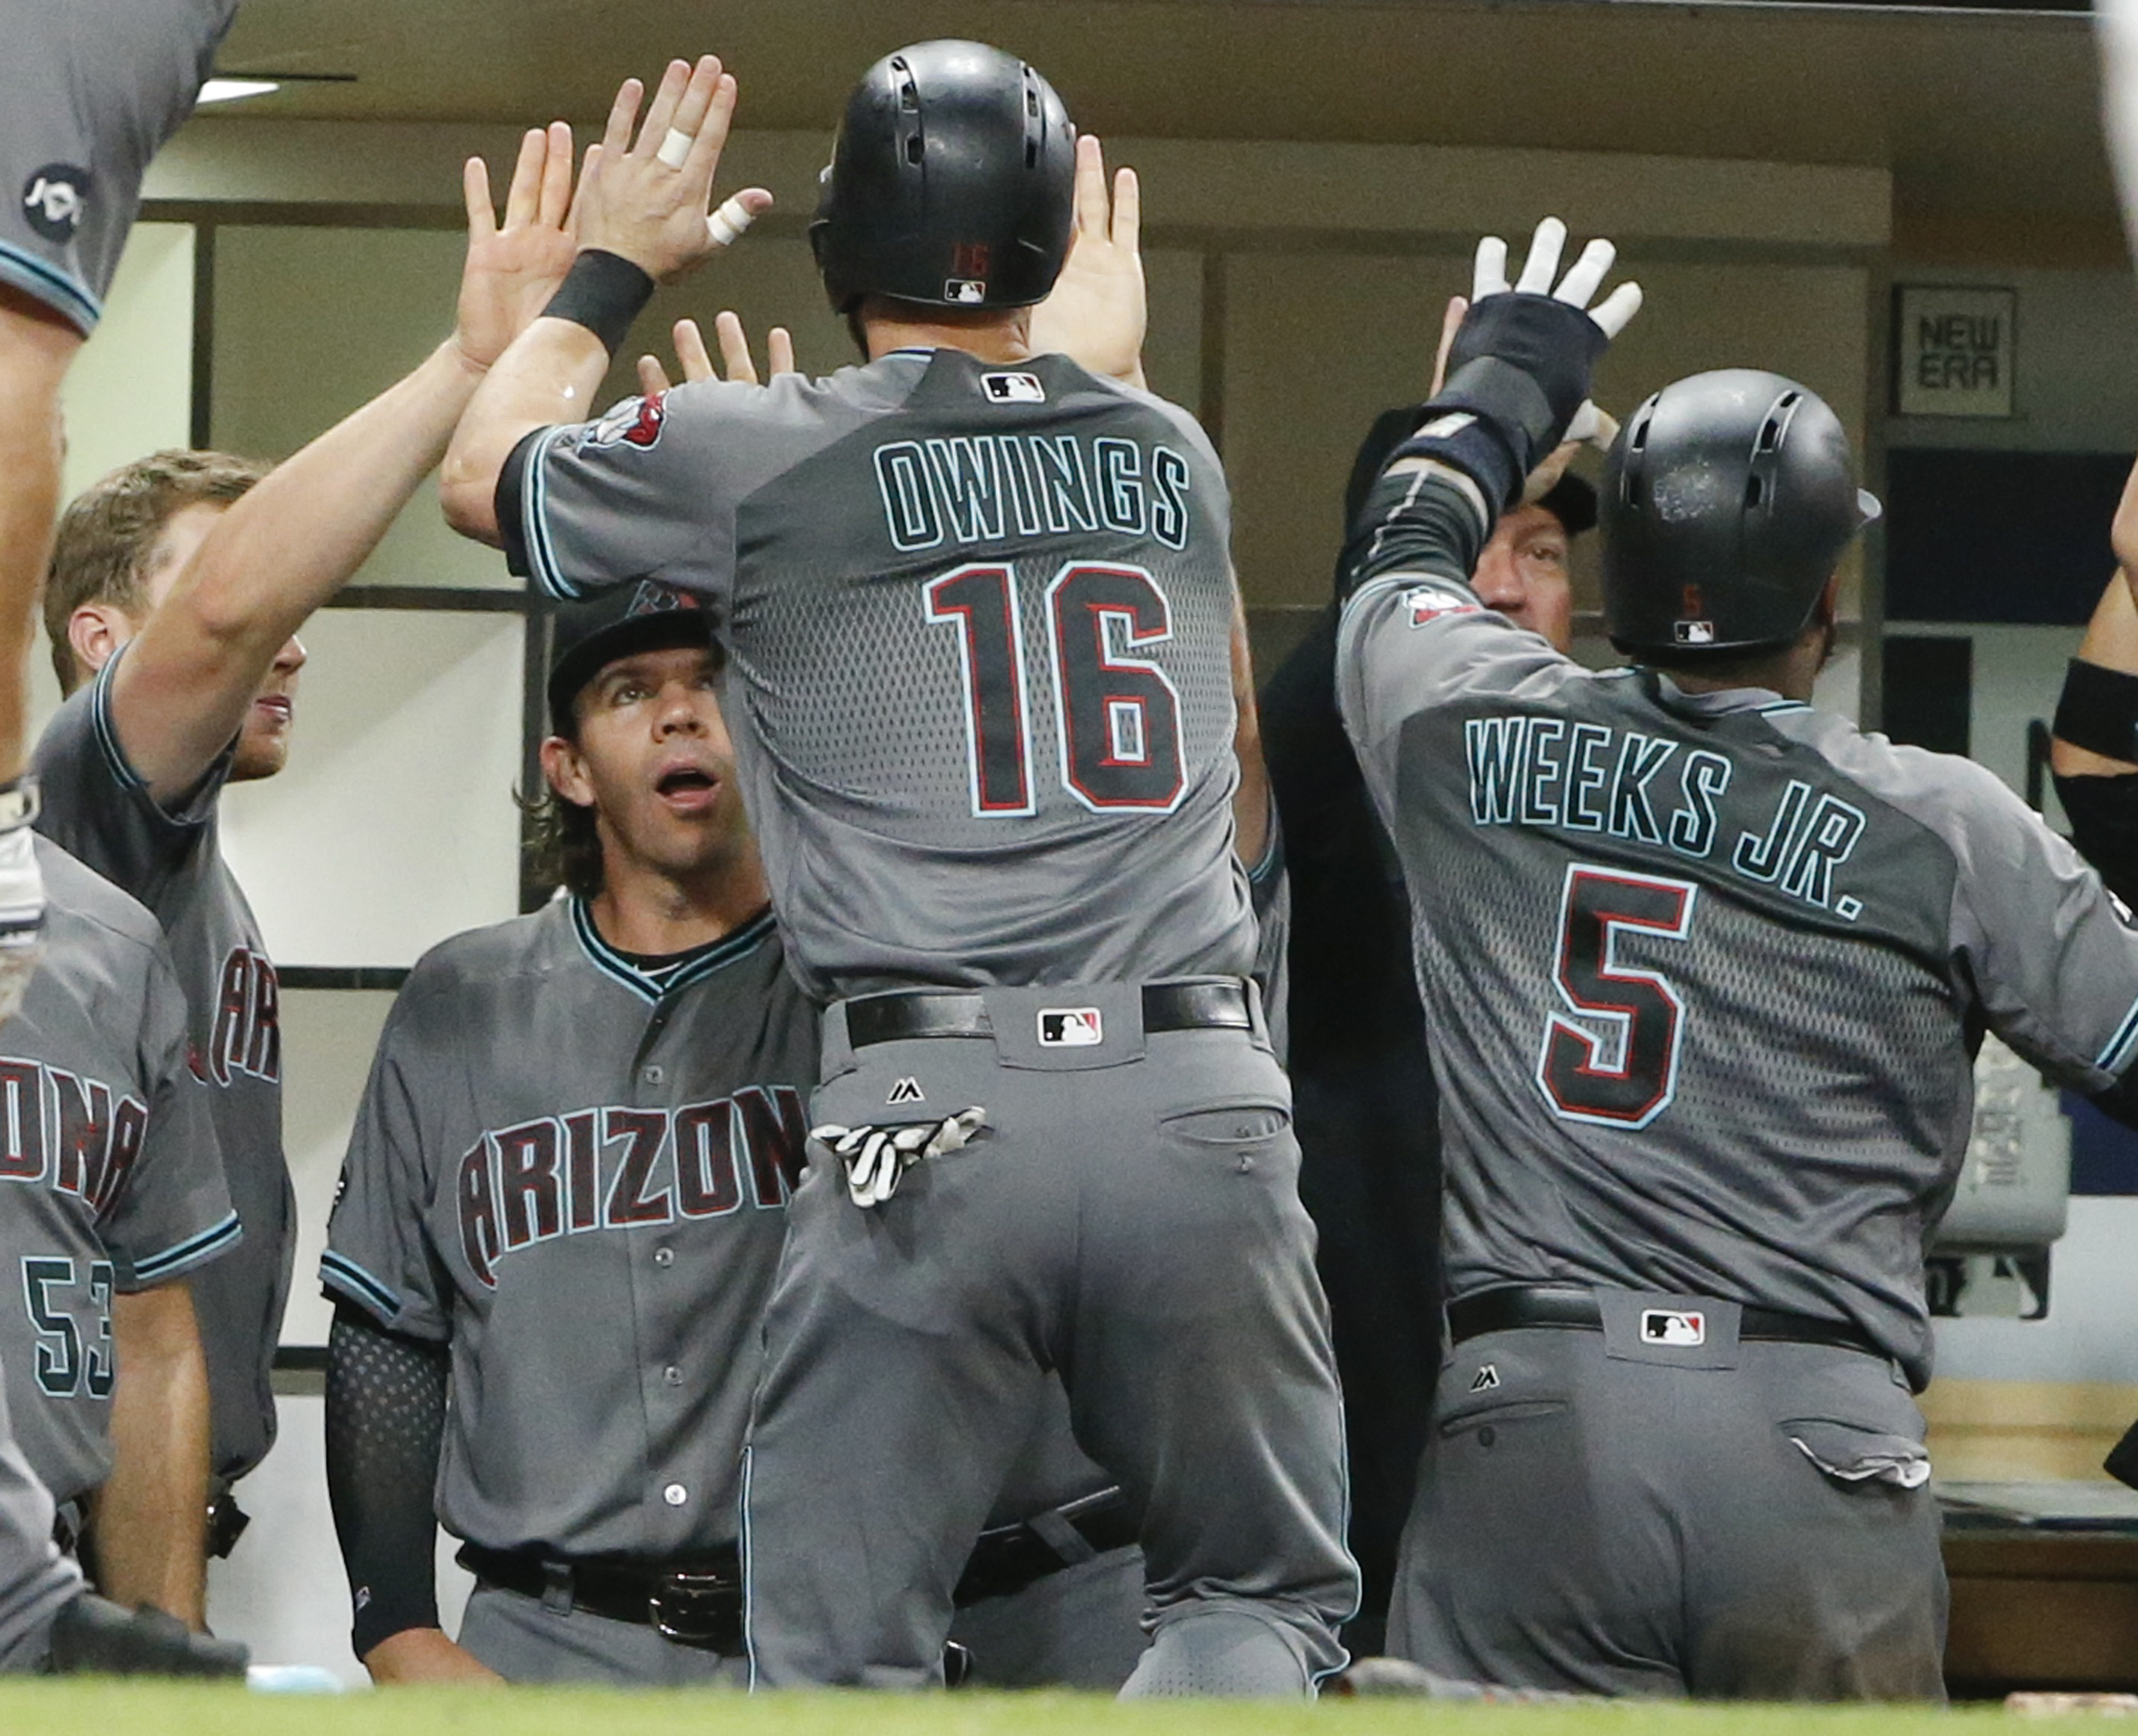 Arizona Diamondbacks' Chris Owings and Rickie Weeks are congratulated after scoring against the San Diego Padres in the eighth inning of a baseball game Friday, Aug. 19, 2016, in San Diego. (AP Photo/Lenny Ignelzi)